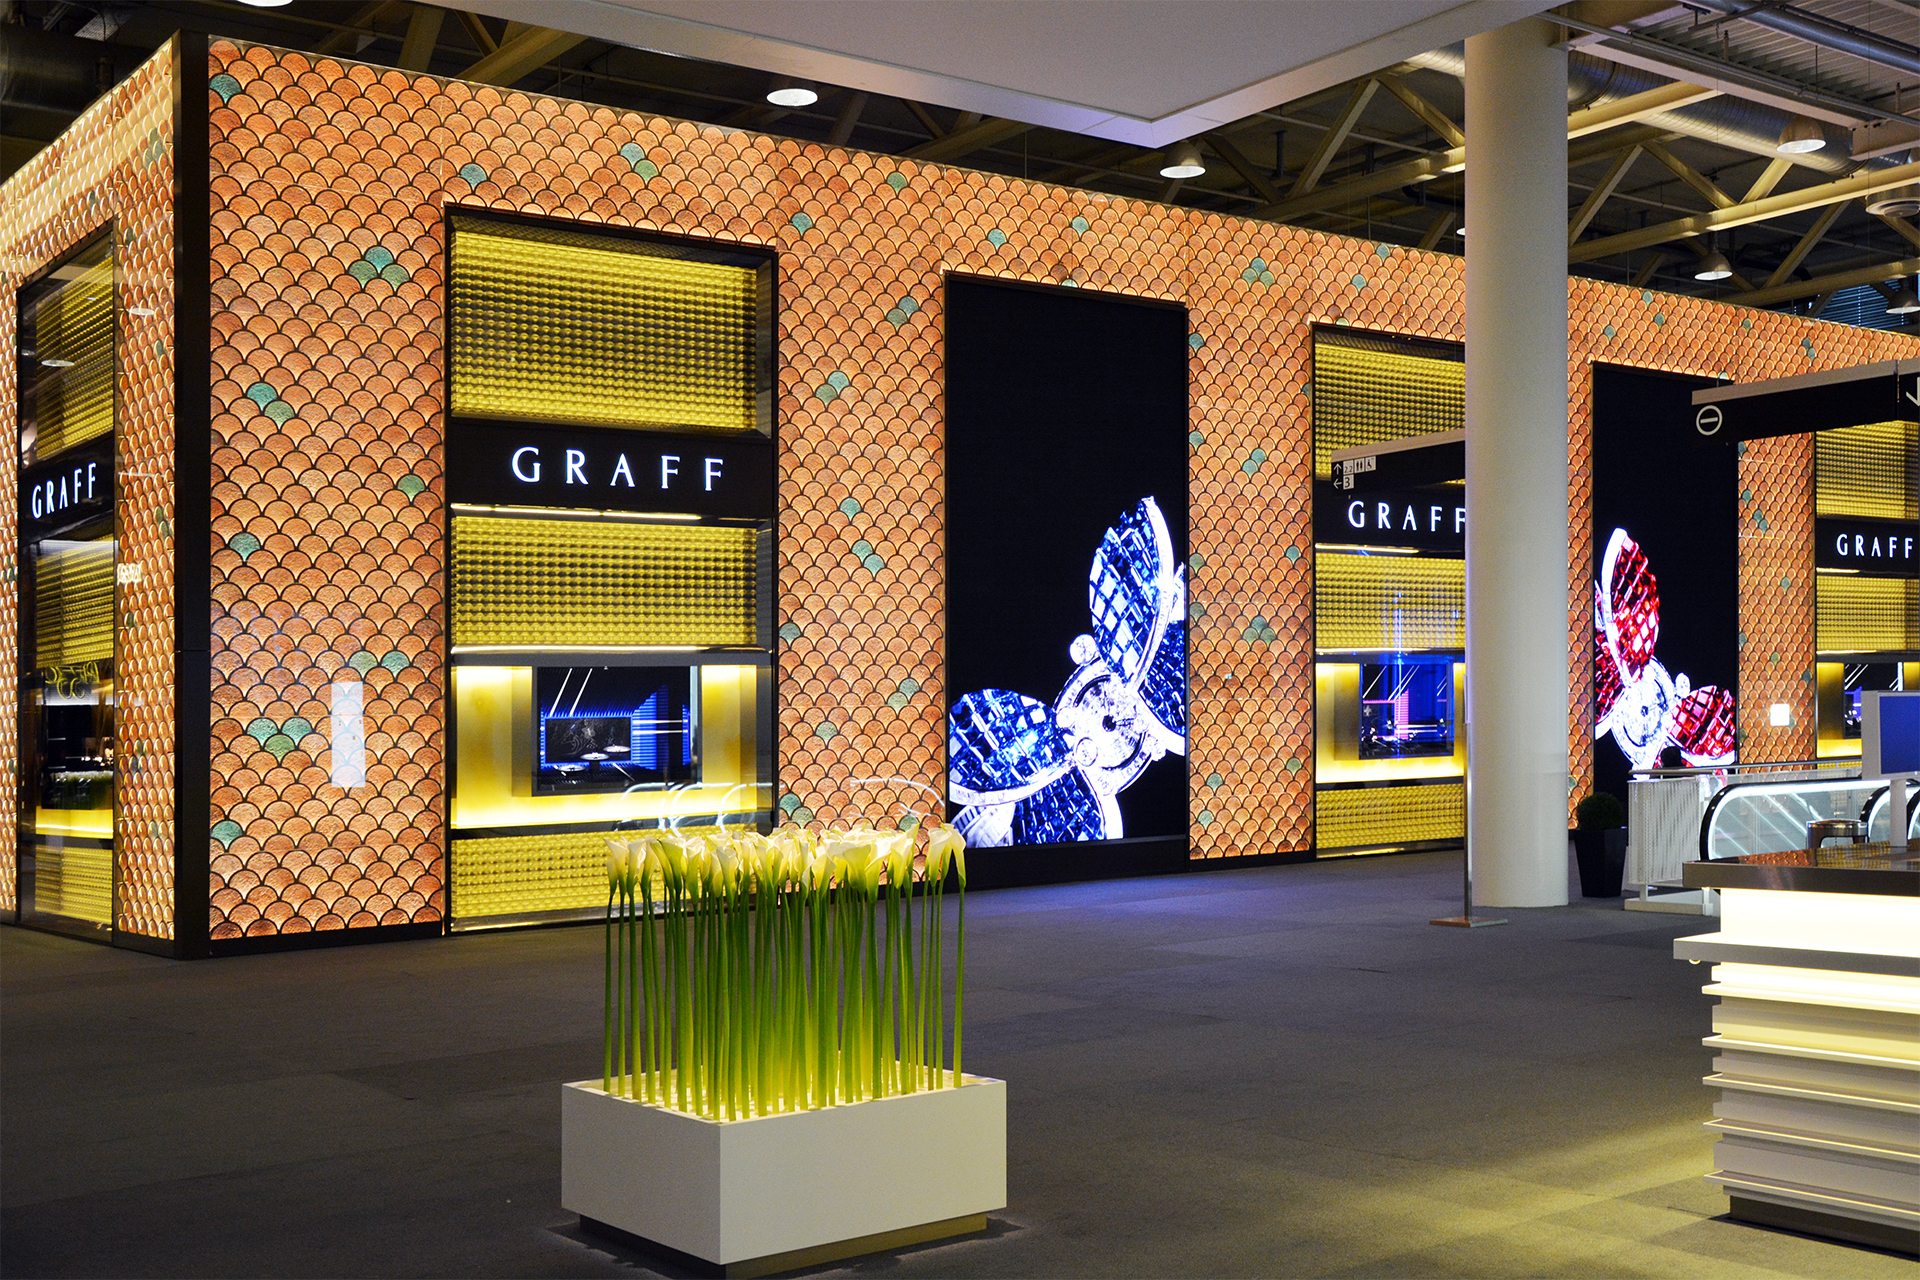 Graff - Baselworld 2017